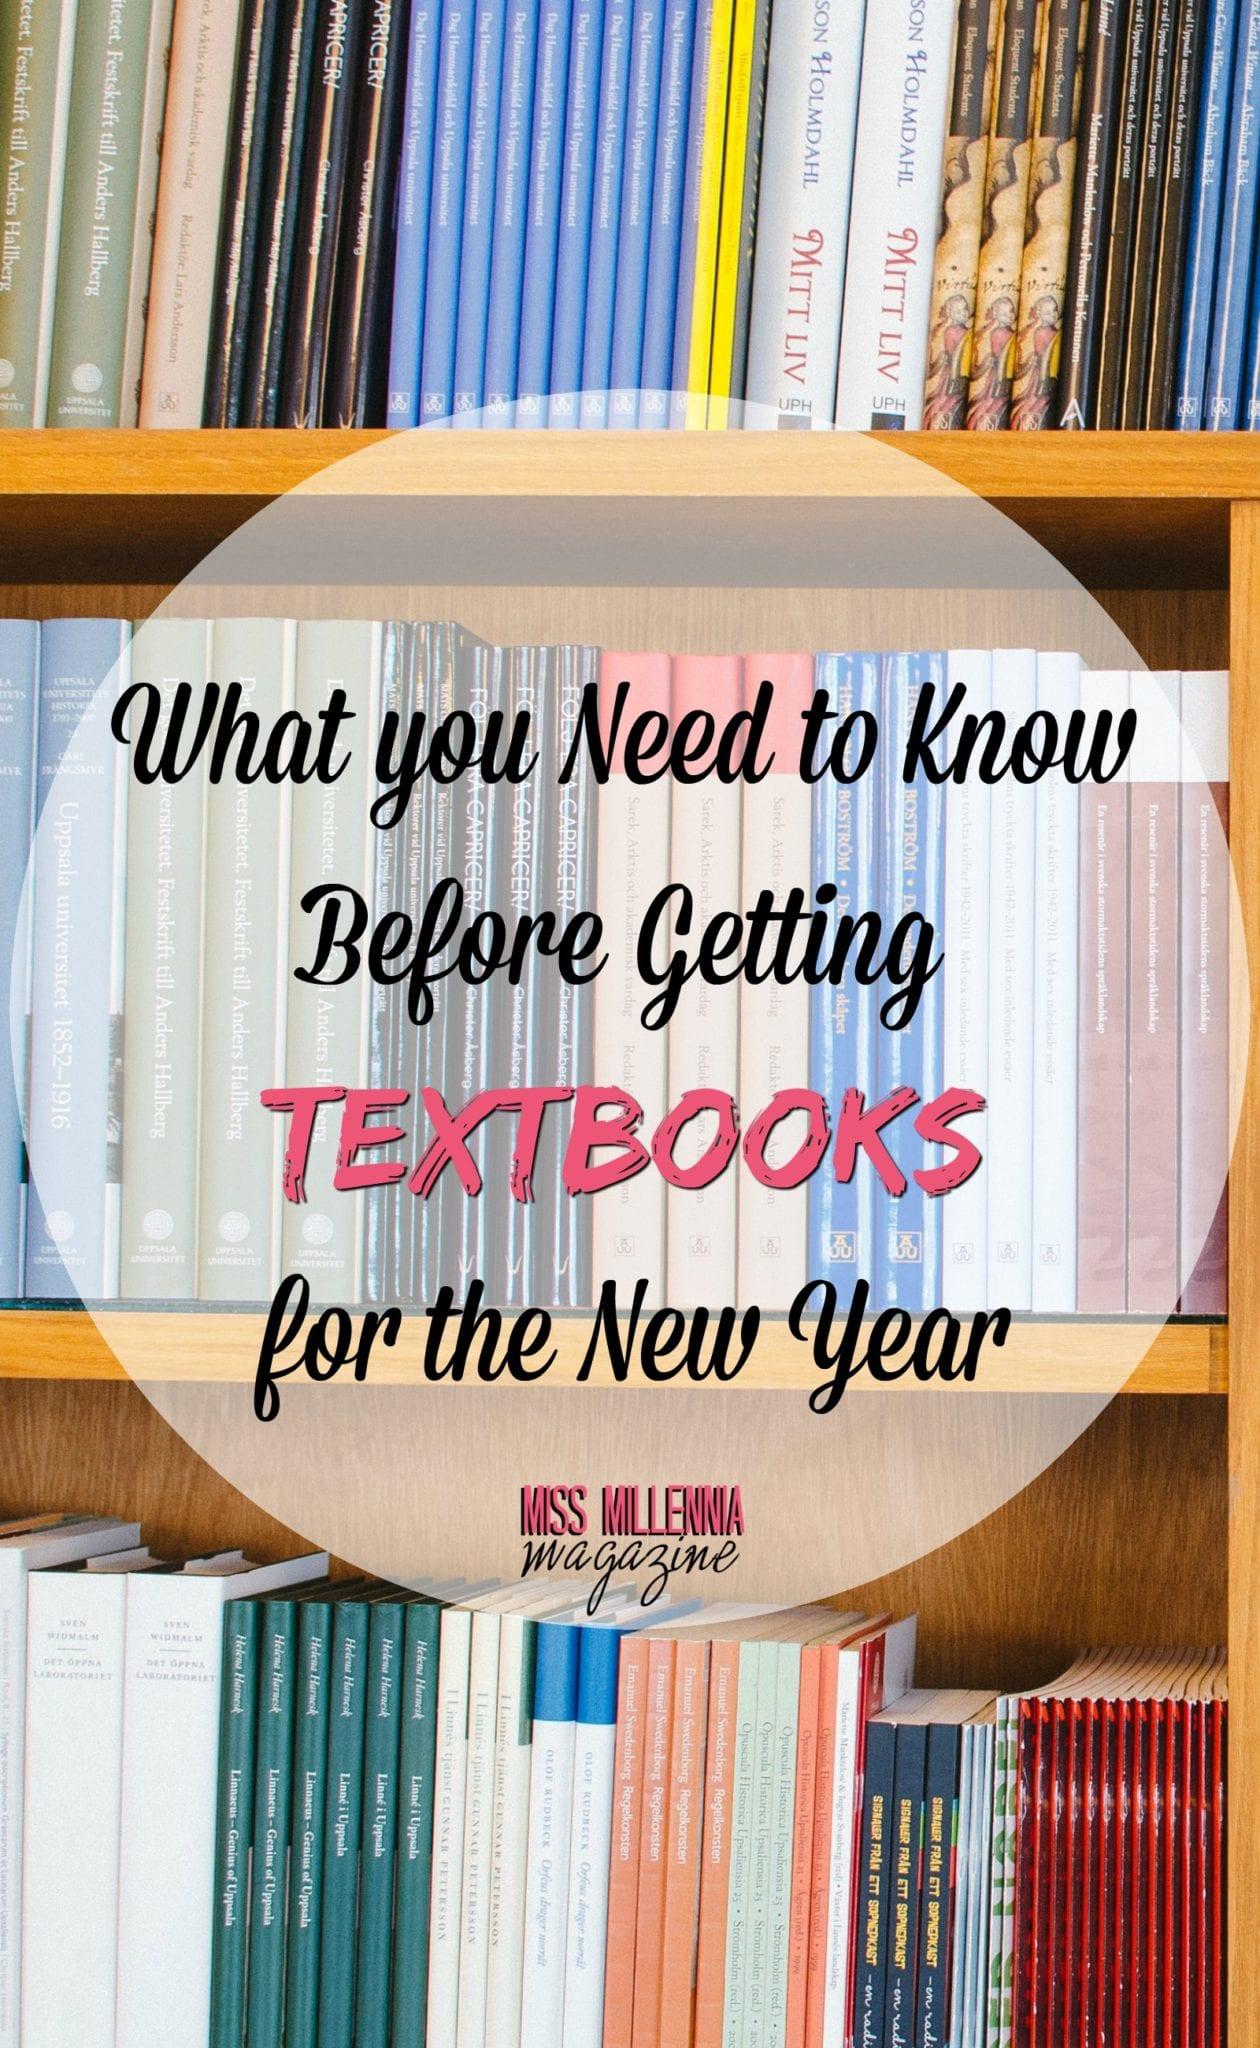 What you Need to Know Before Getting Textbooks for the New Year